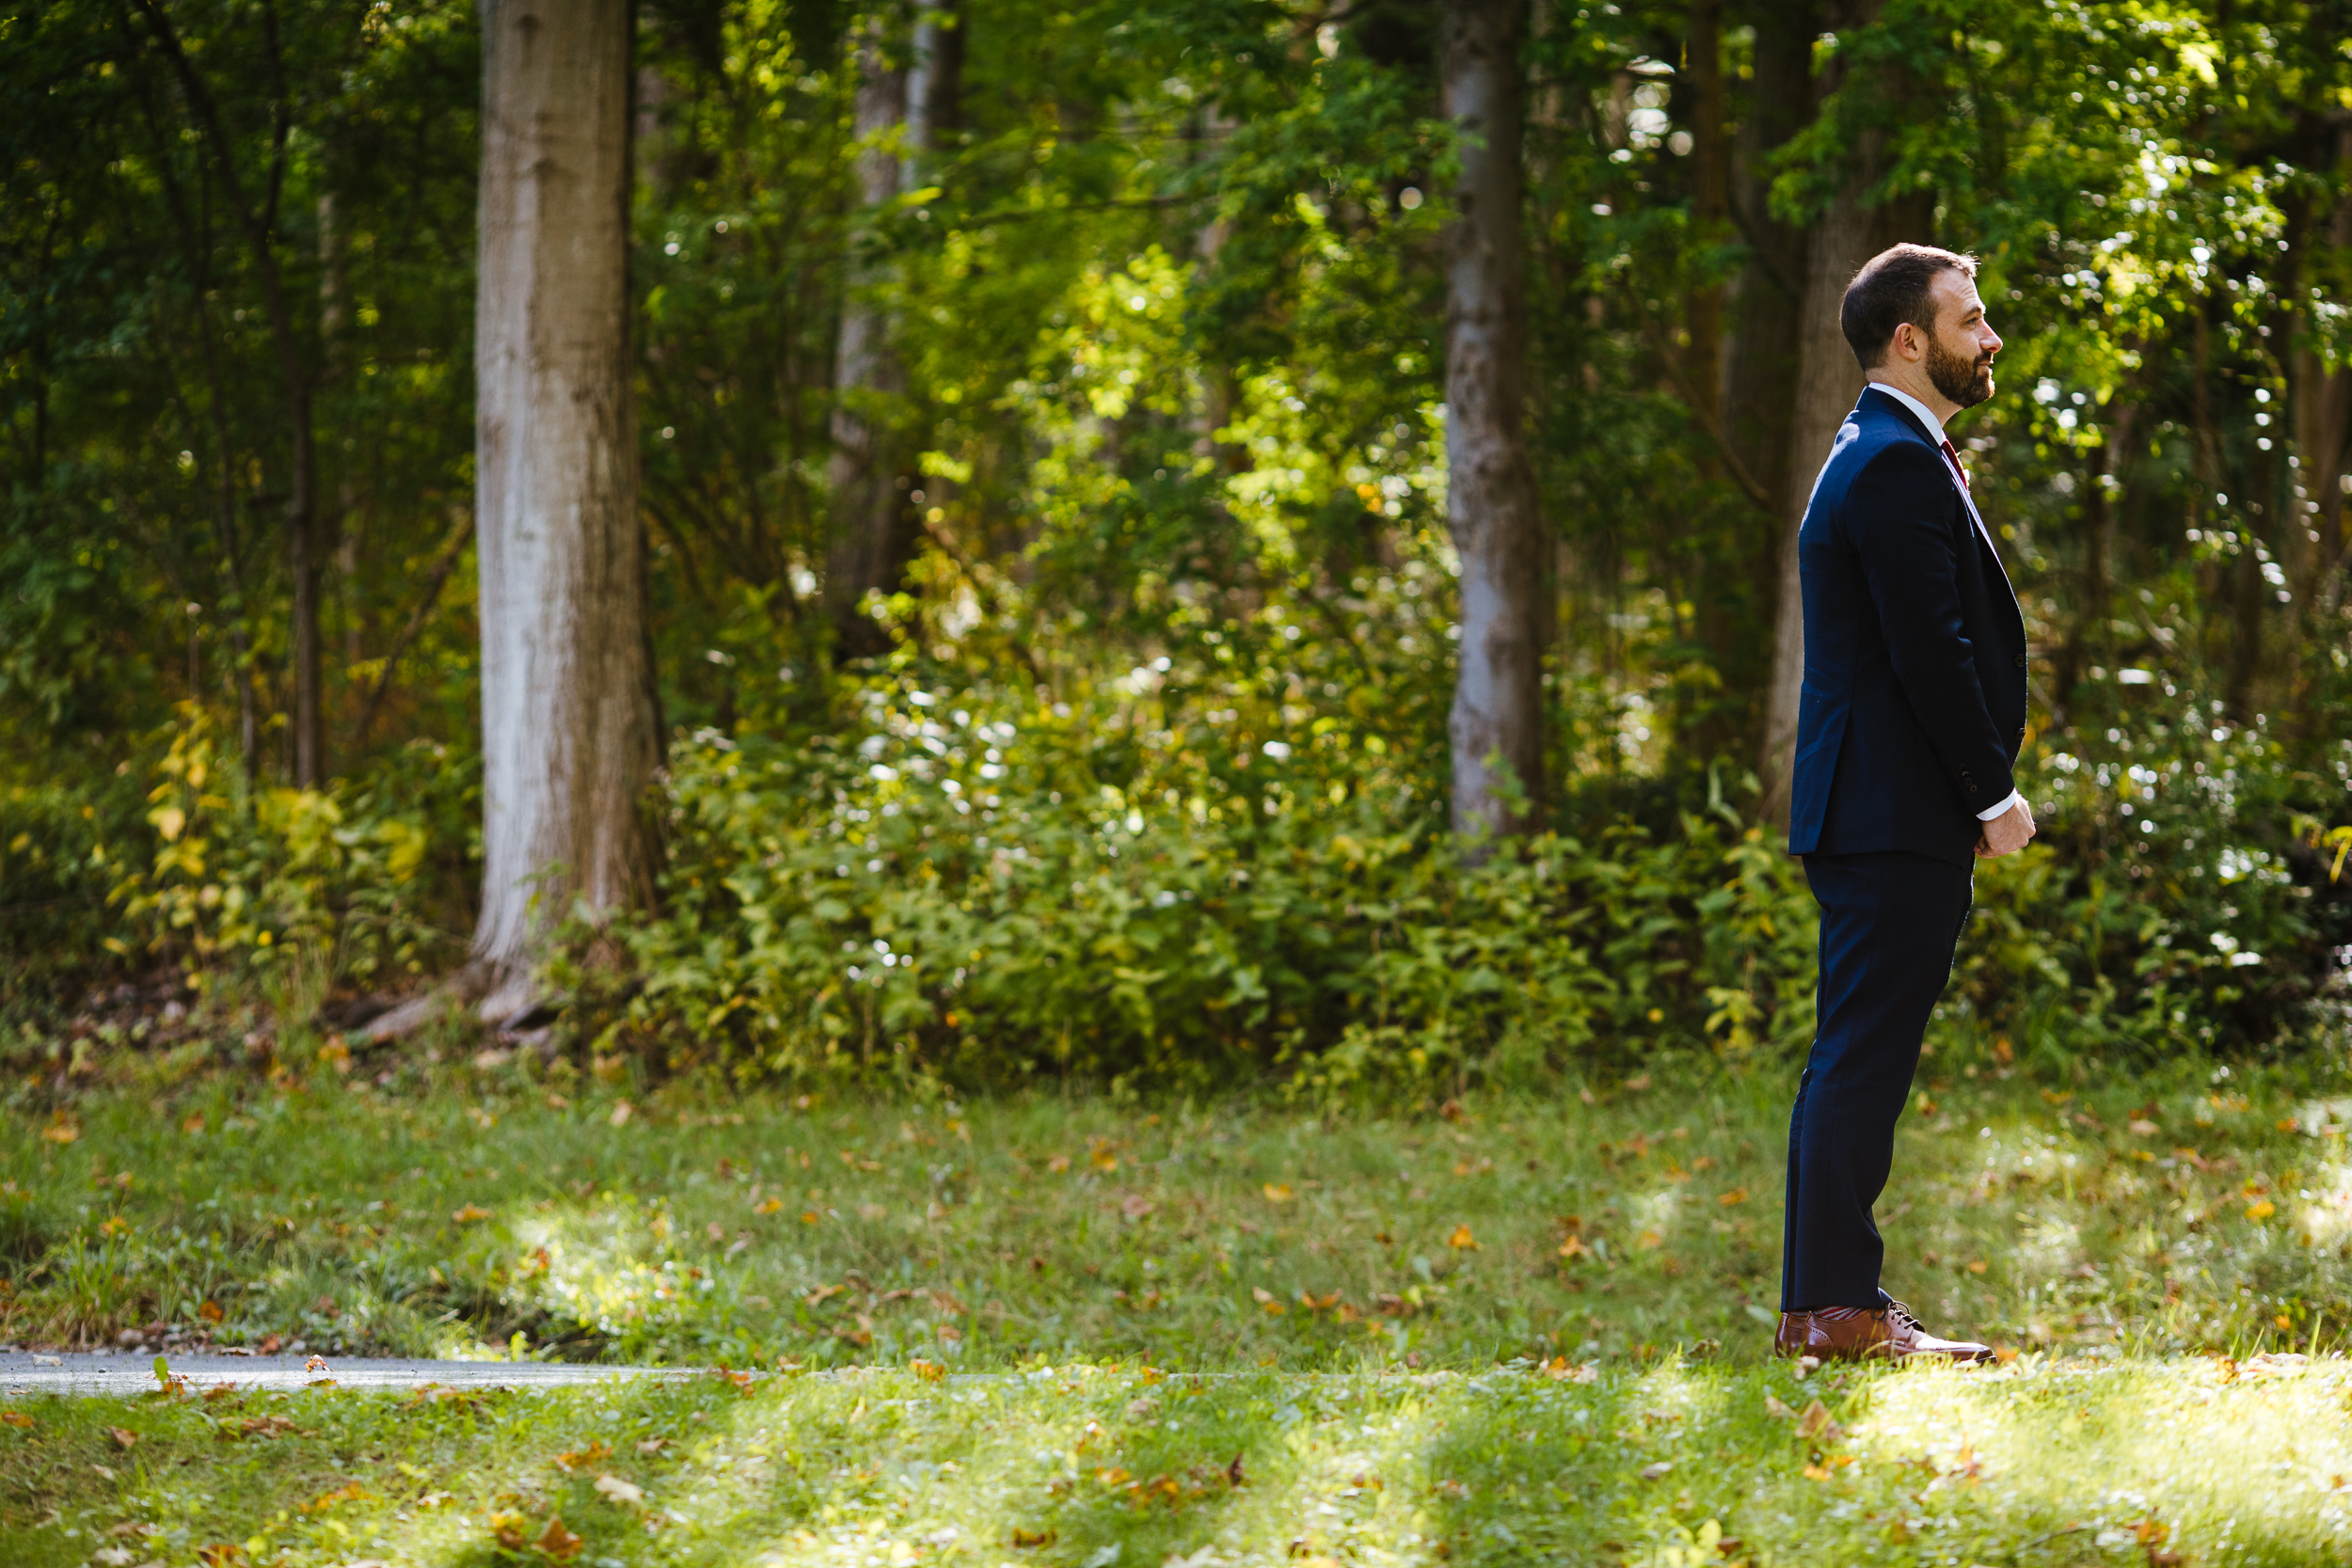 outdoor-ithaca-newyork-wedding-calypso-rae-photography-89.jpg